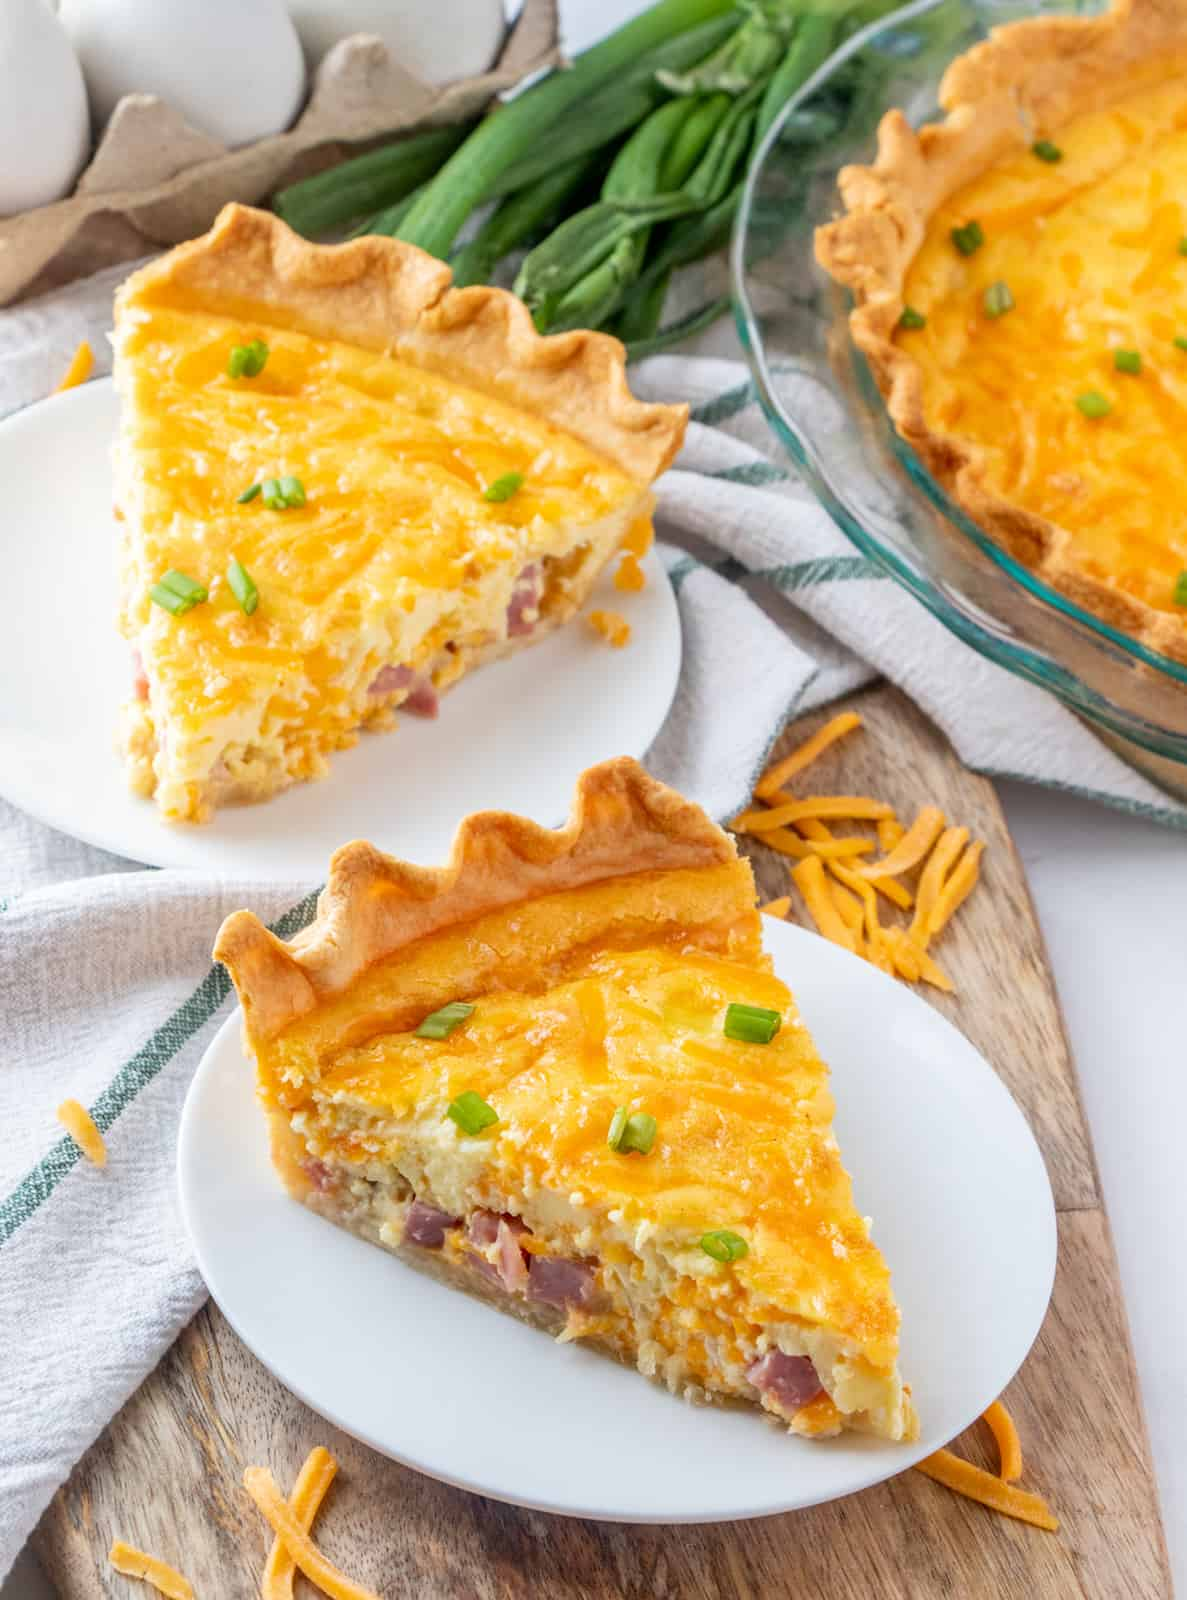 Quiche on two plates topped with green onions and garnished with cheese